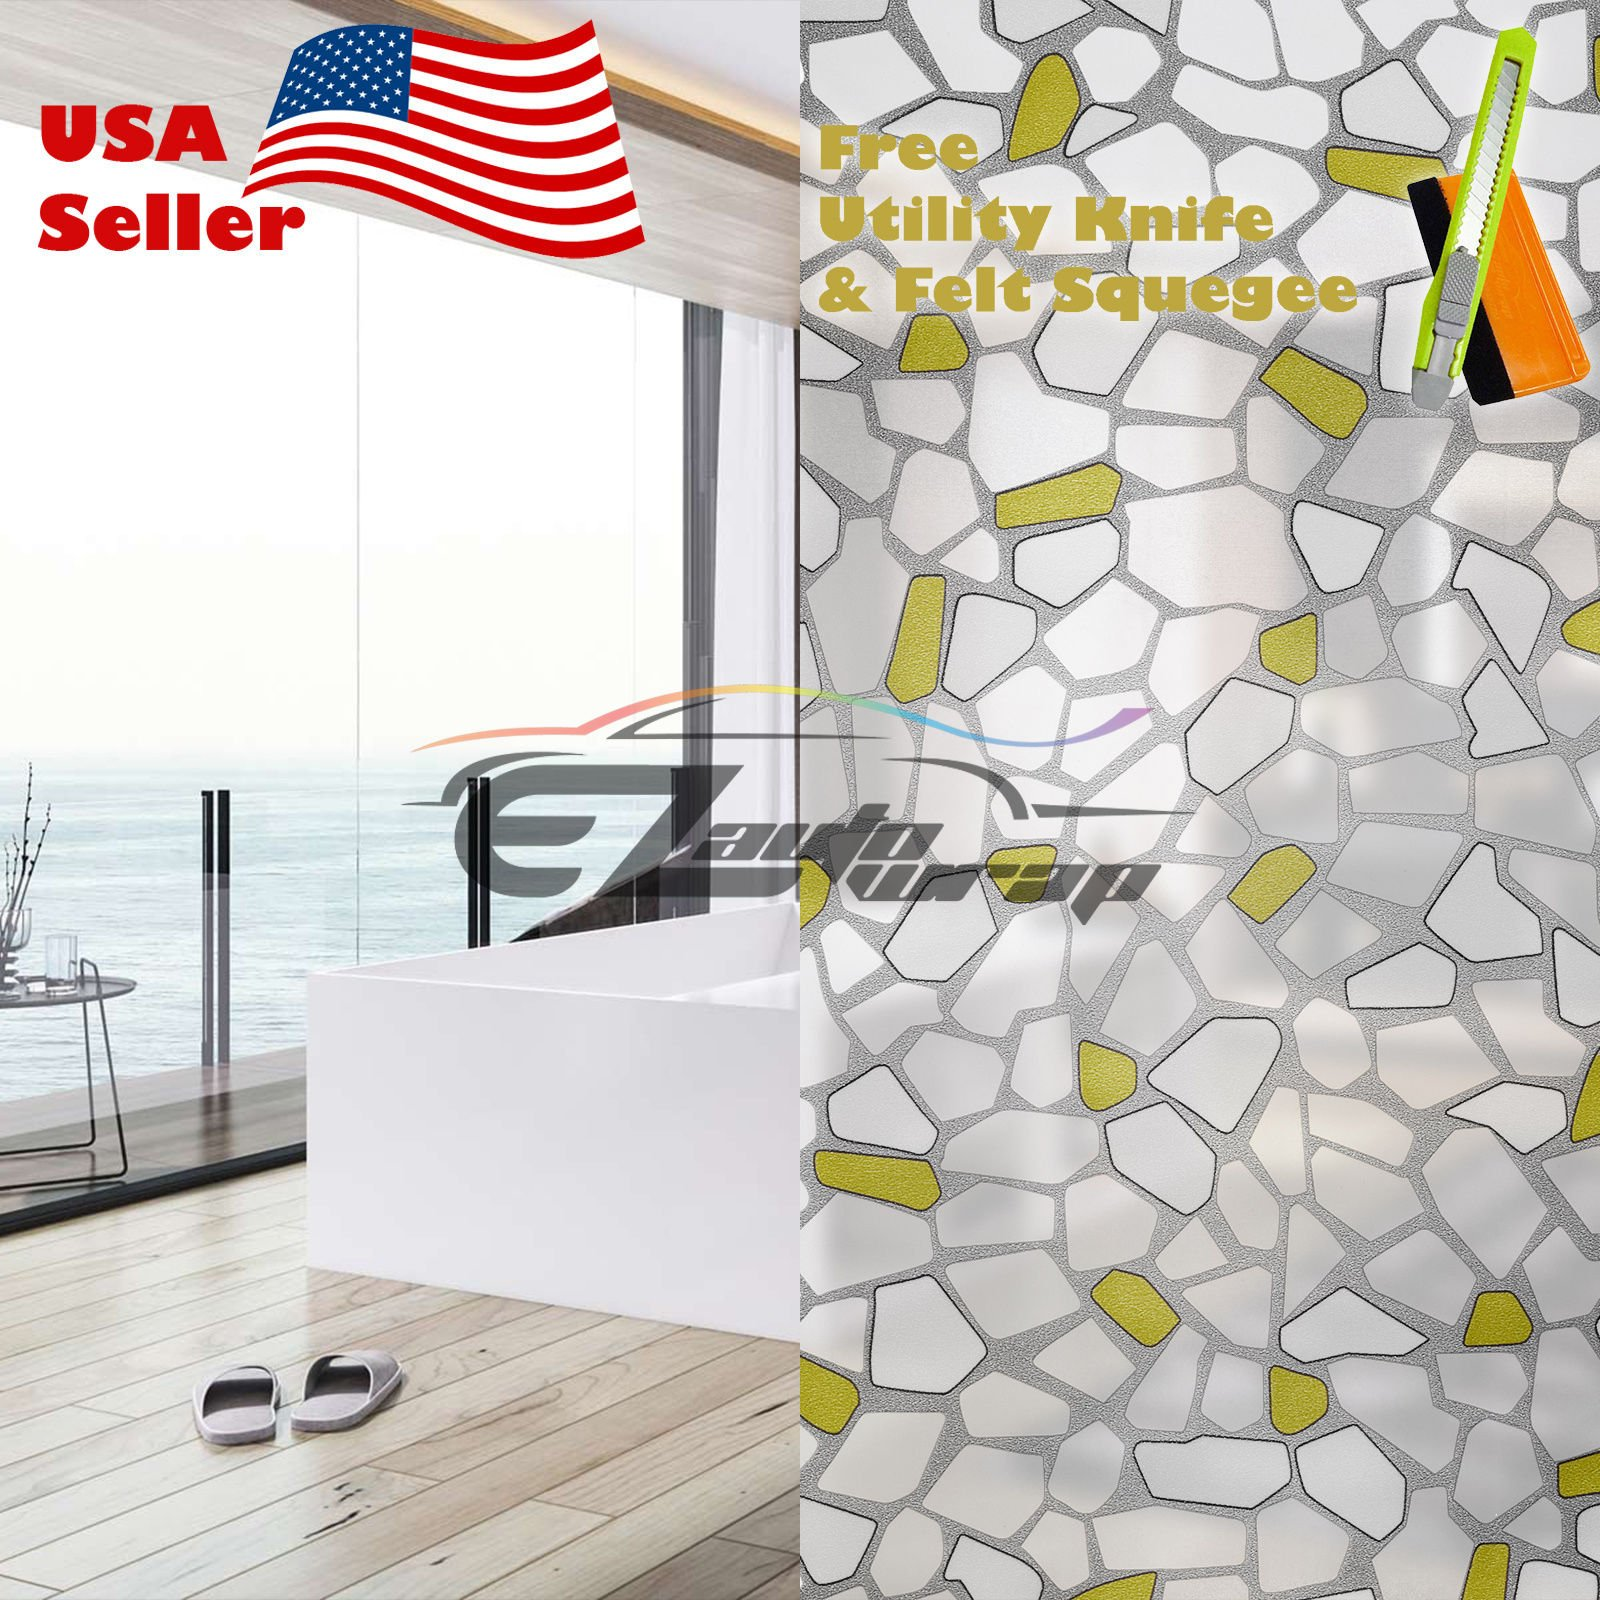 Free Tool Kit EZAUTOWRAP Yellow Brick Frosted Glass Peel And Stick Window Film Home Bedroom Bathroom Privacy Waterproof Sticker Decal - 36''X600'' (3FT X 50FT)